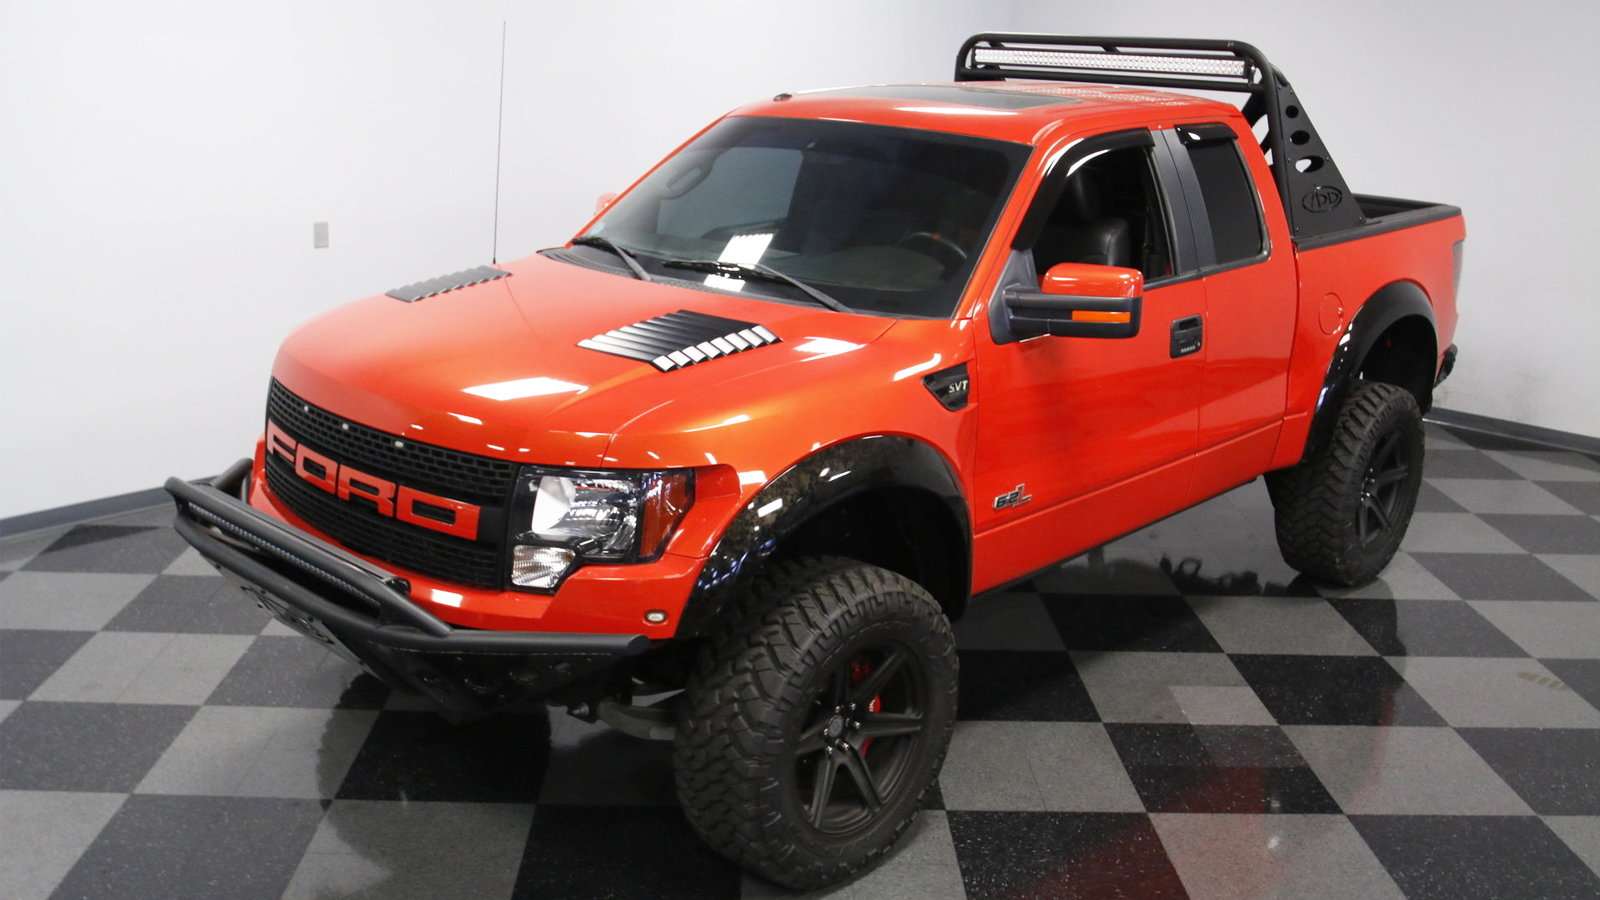 Molten Orange Raptor Takes You Off-Road